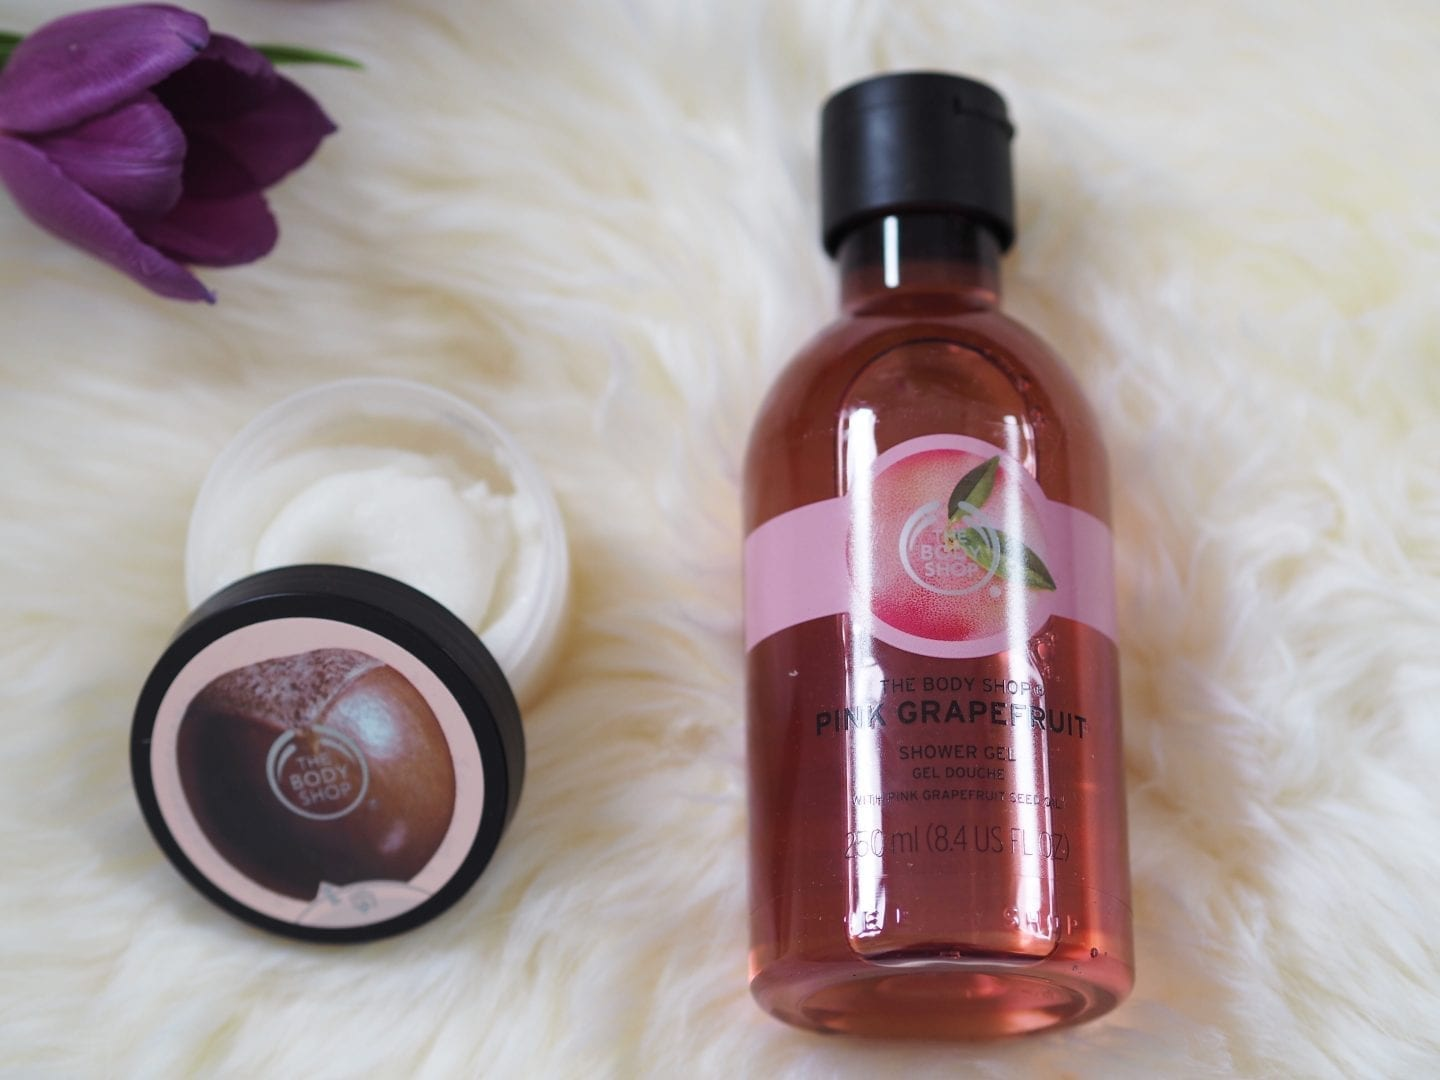 Body Shop Pink Grapefruit Shower Gel & Shea Body Scrub